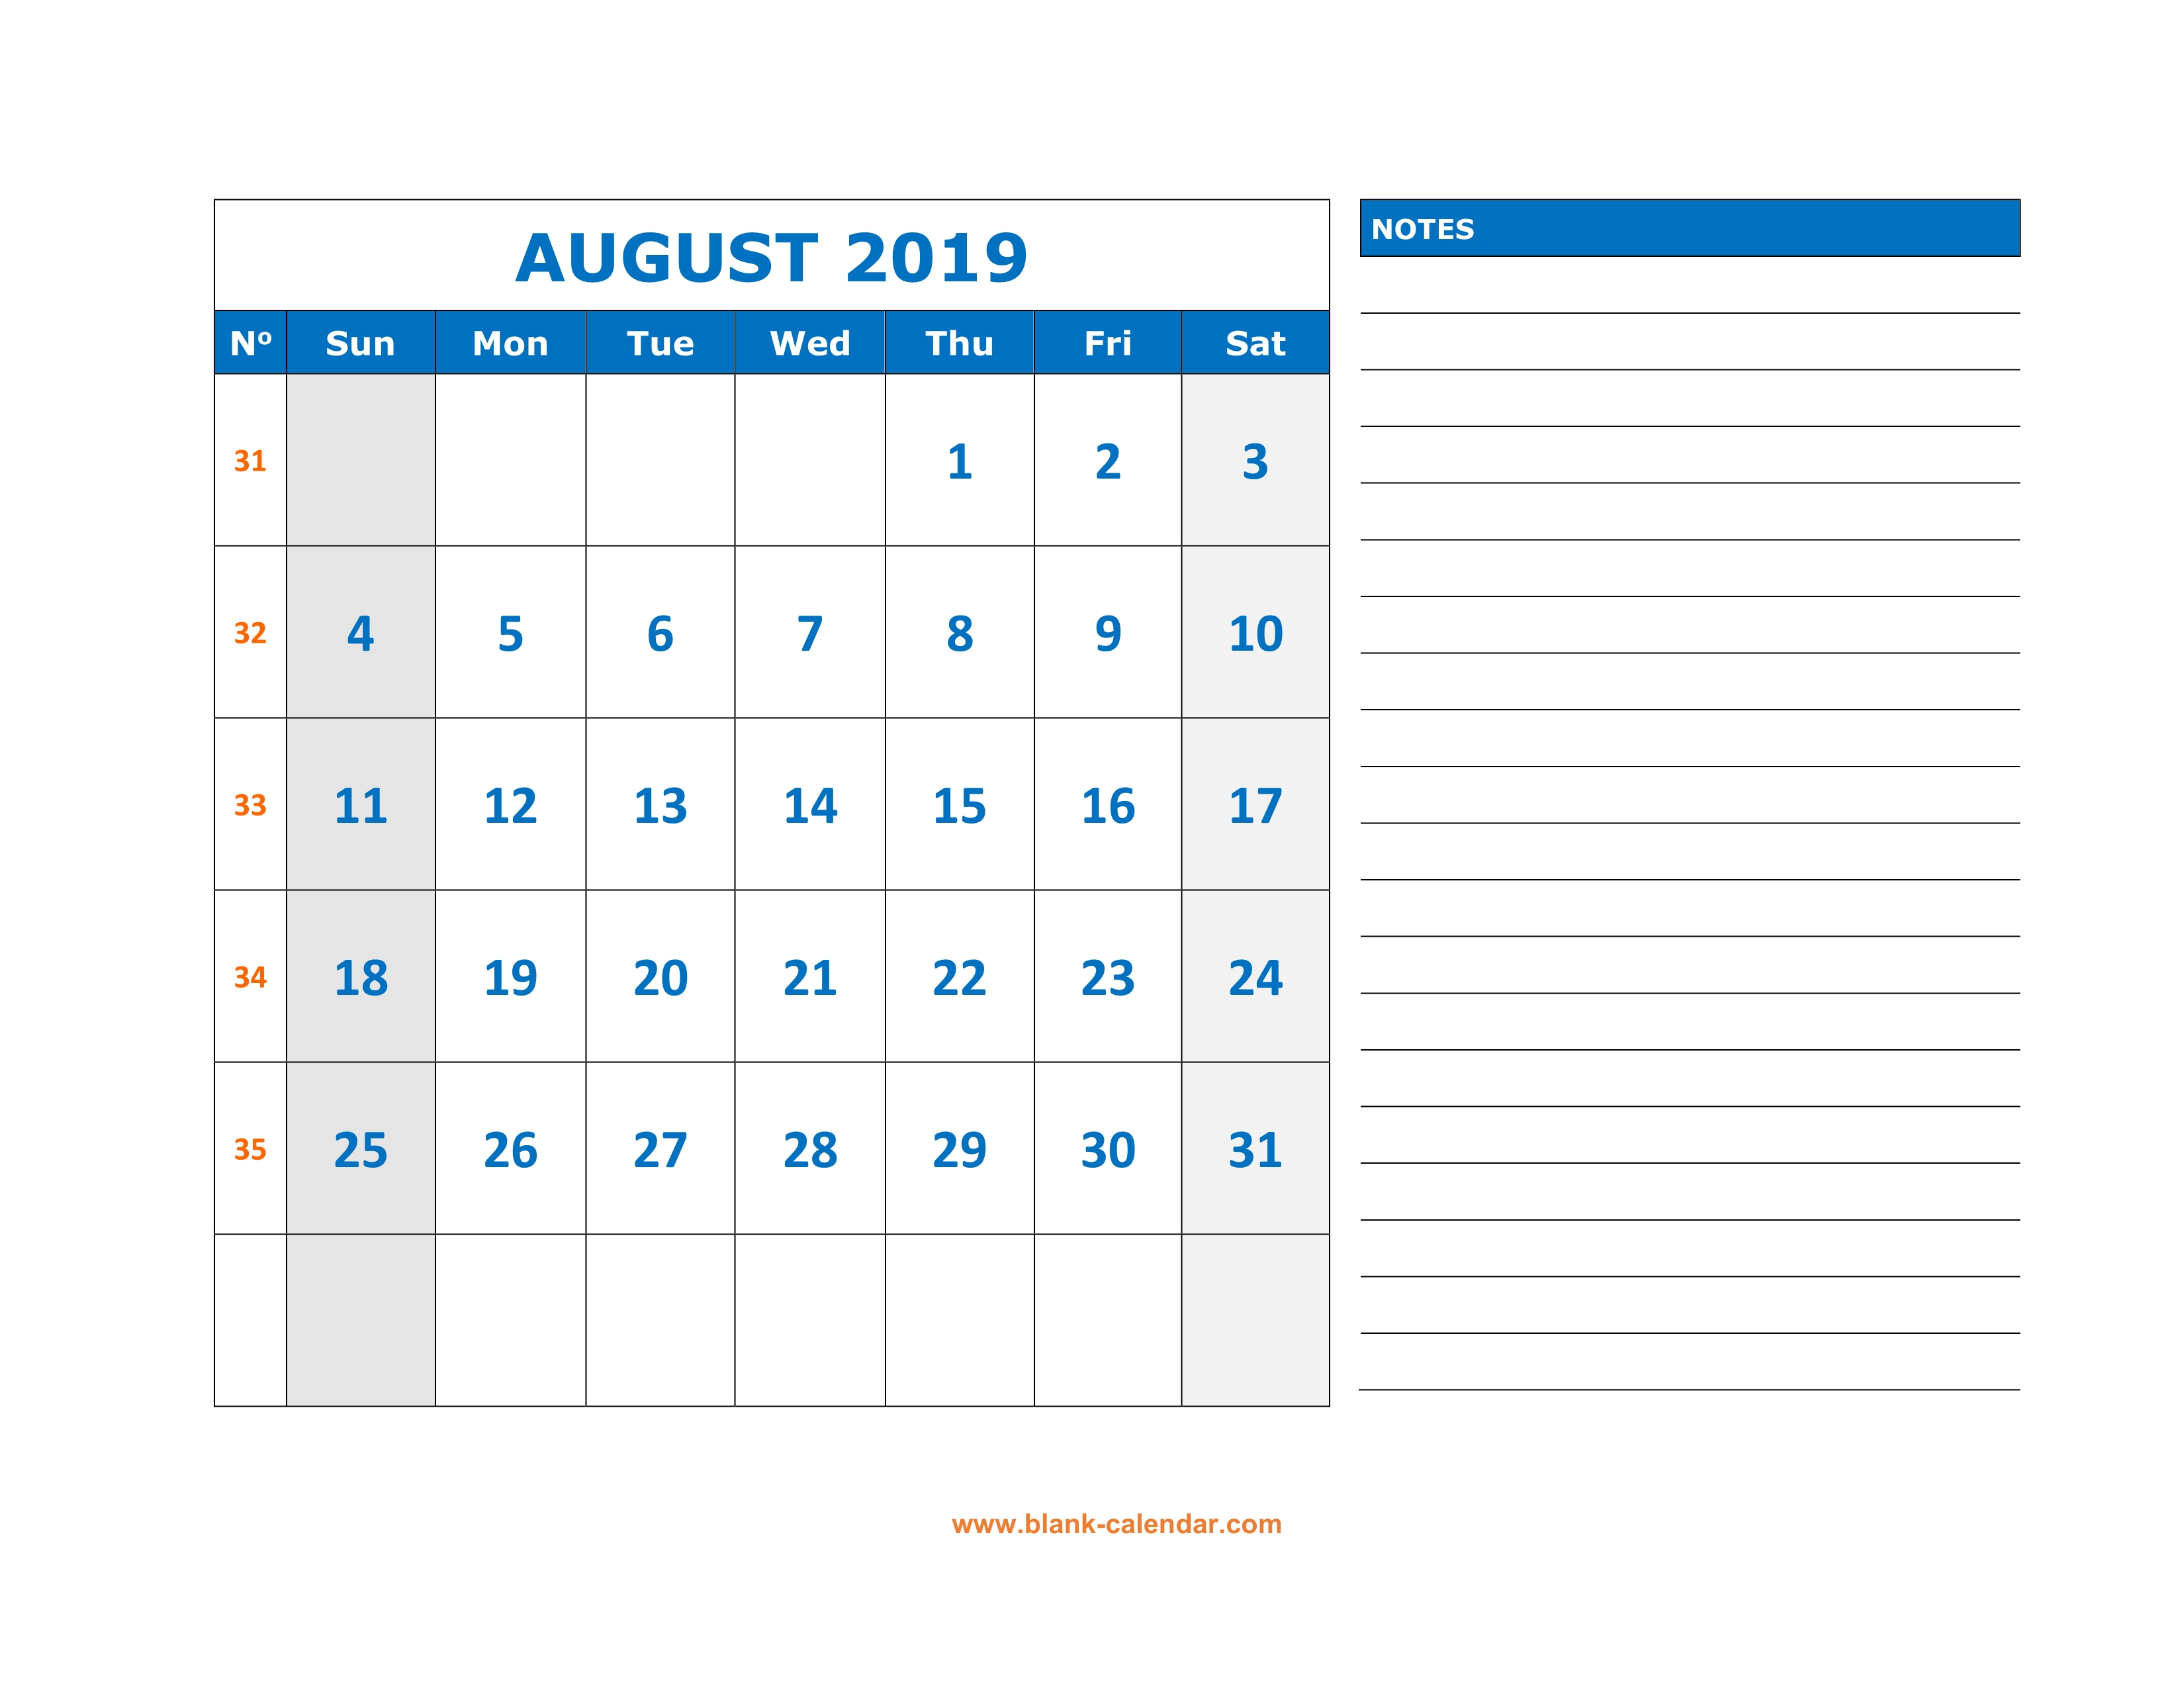 June July August 2019 Calendar Printable.Free Download Printable August 2019 Calendar Large Space For